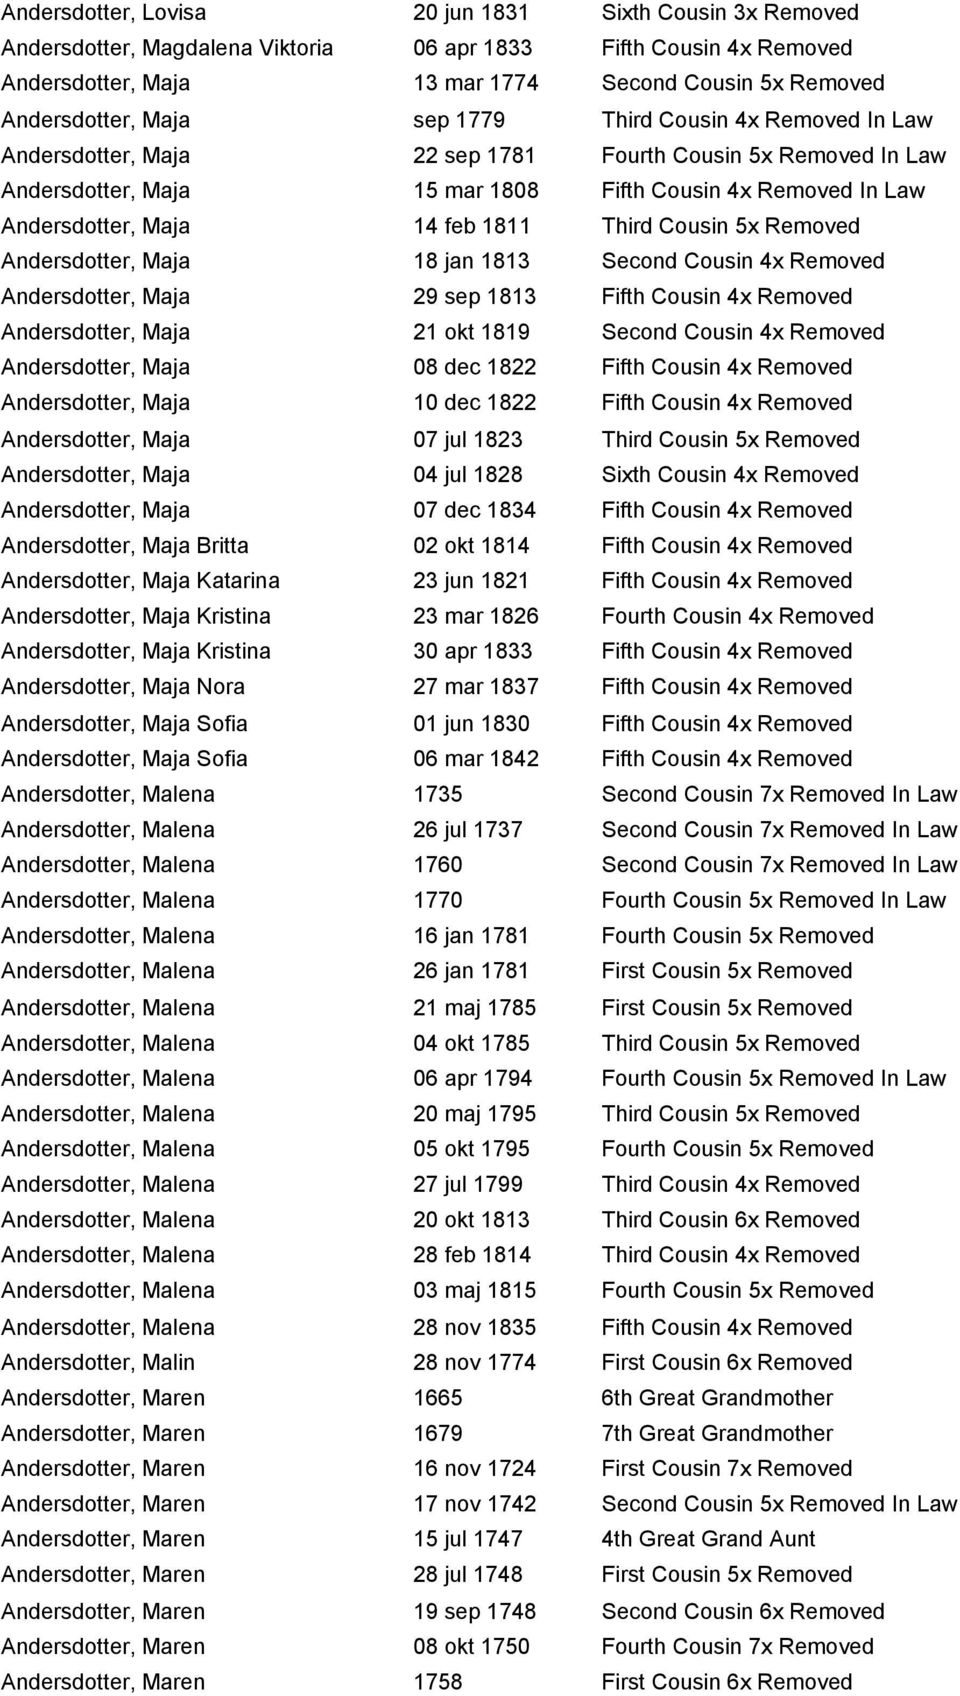 1811 Third Cousin 5x Removed Andersdotter, Maja 18 jan 1813 Second Cousin 4x Removed Andersdotter, Maja 29 sep 1813 Fifth Cousin 4x Removed Andersdotter, Maja 21 okt 1819 Second Cousin 4x Removed